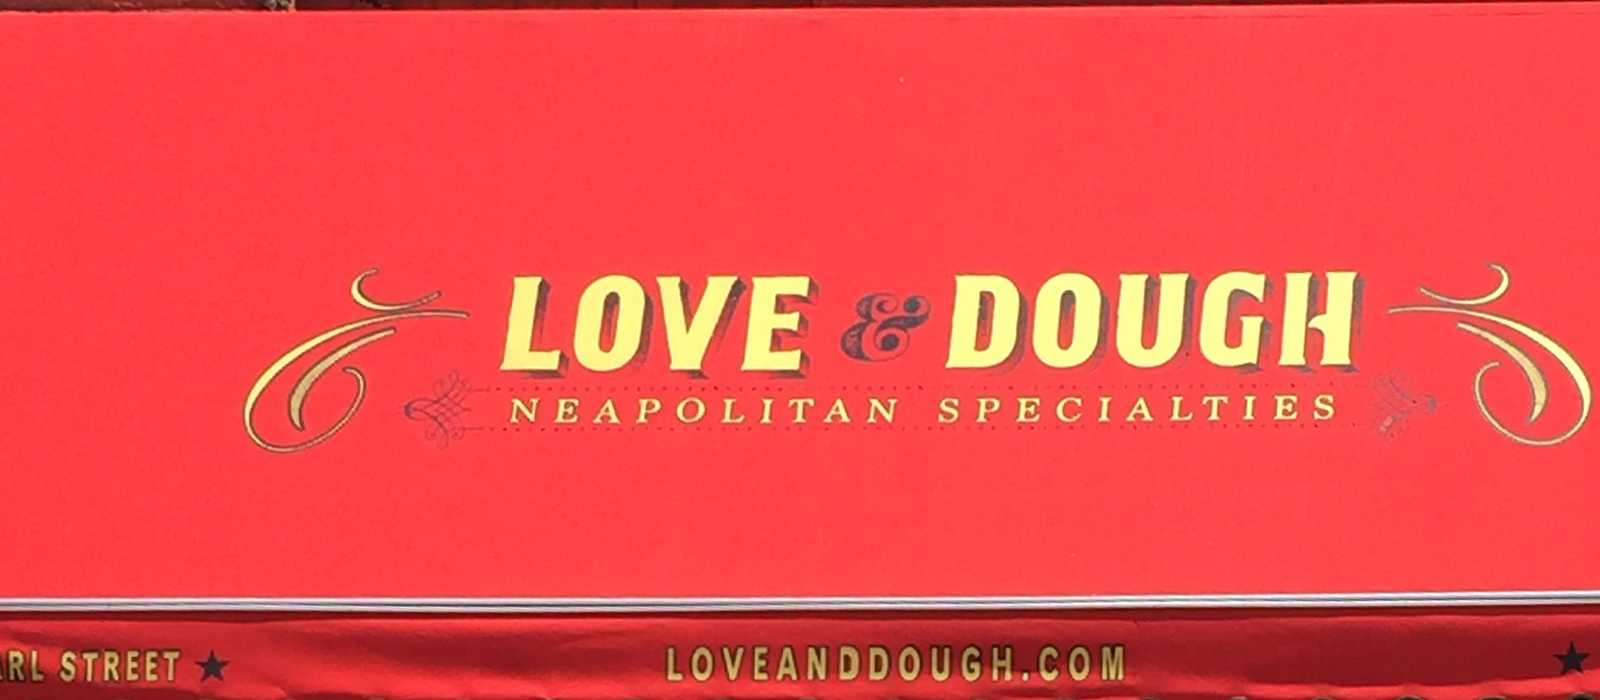 Love & Dough in Brooklyn